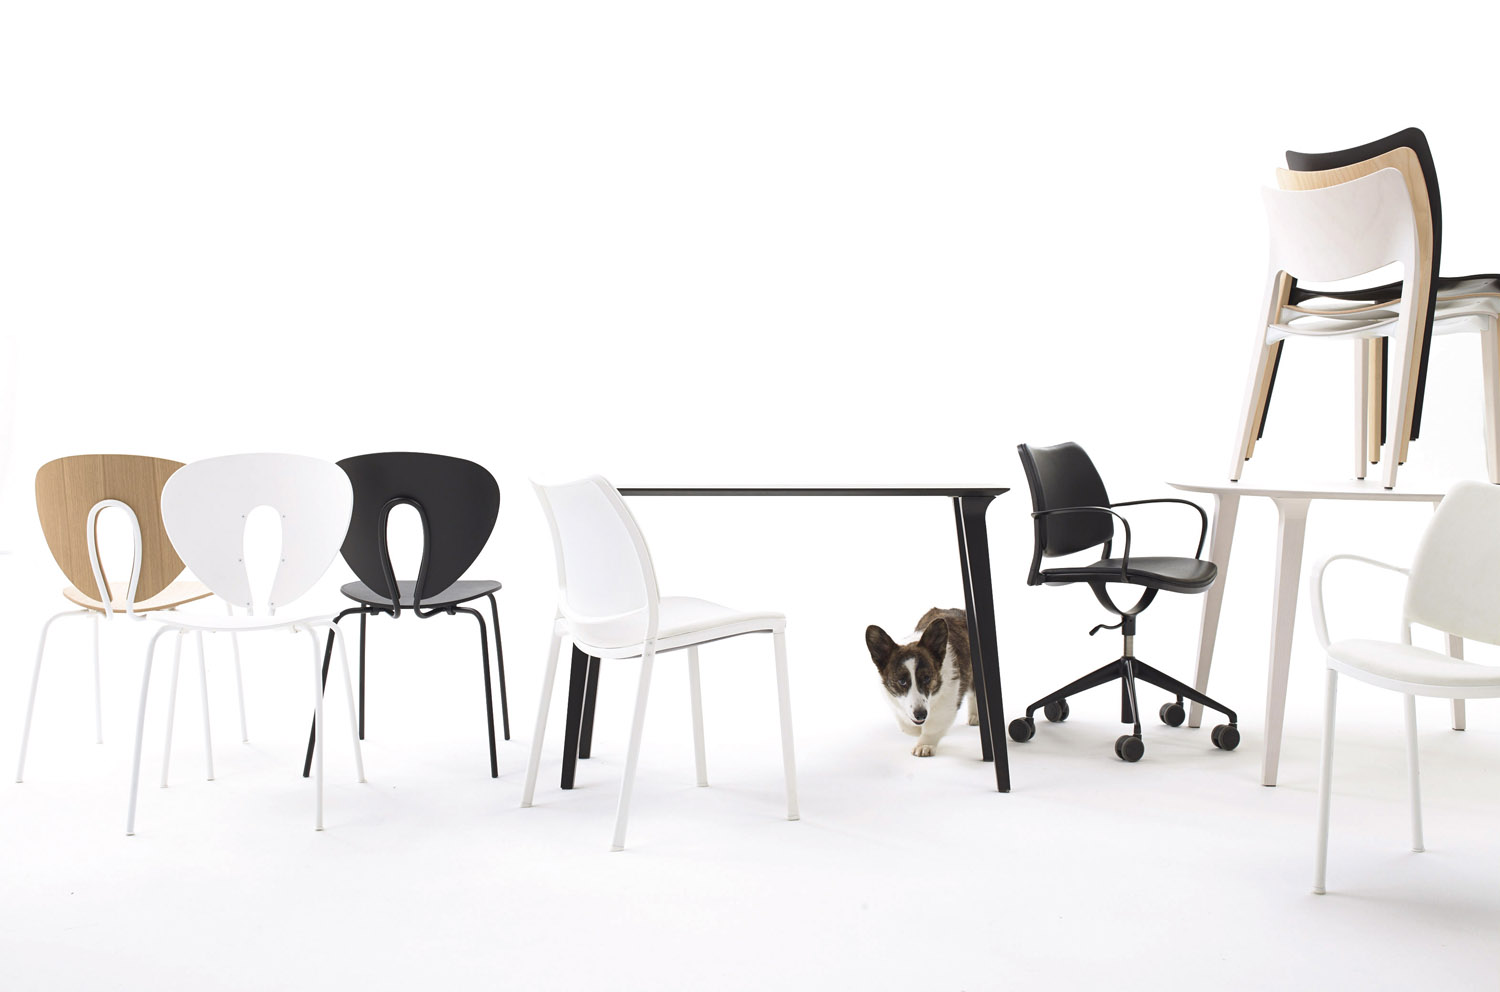 stua-design-furniture-chairs-tables-dwr